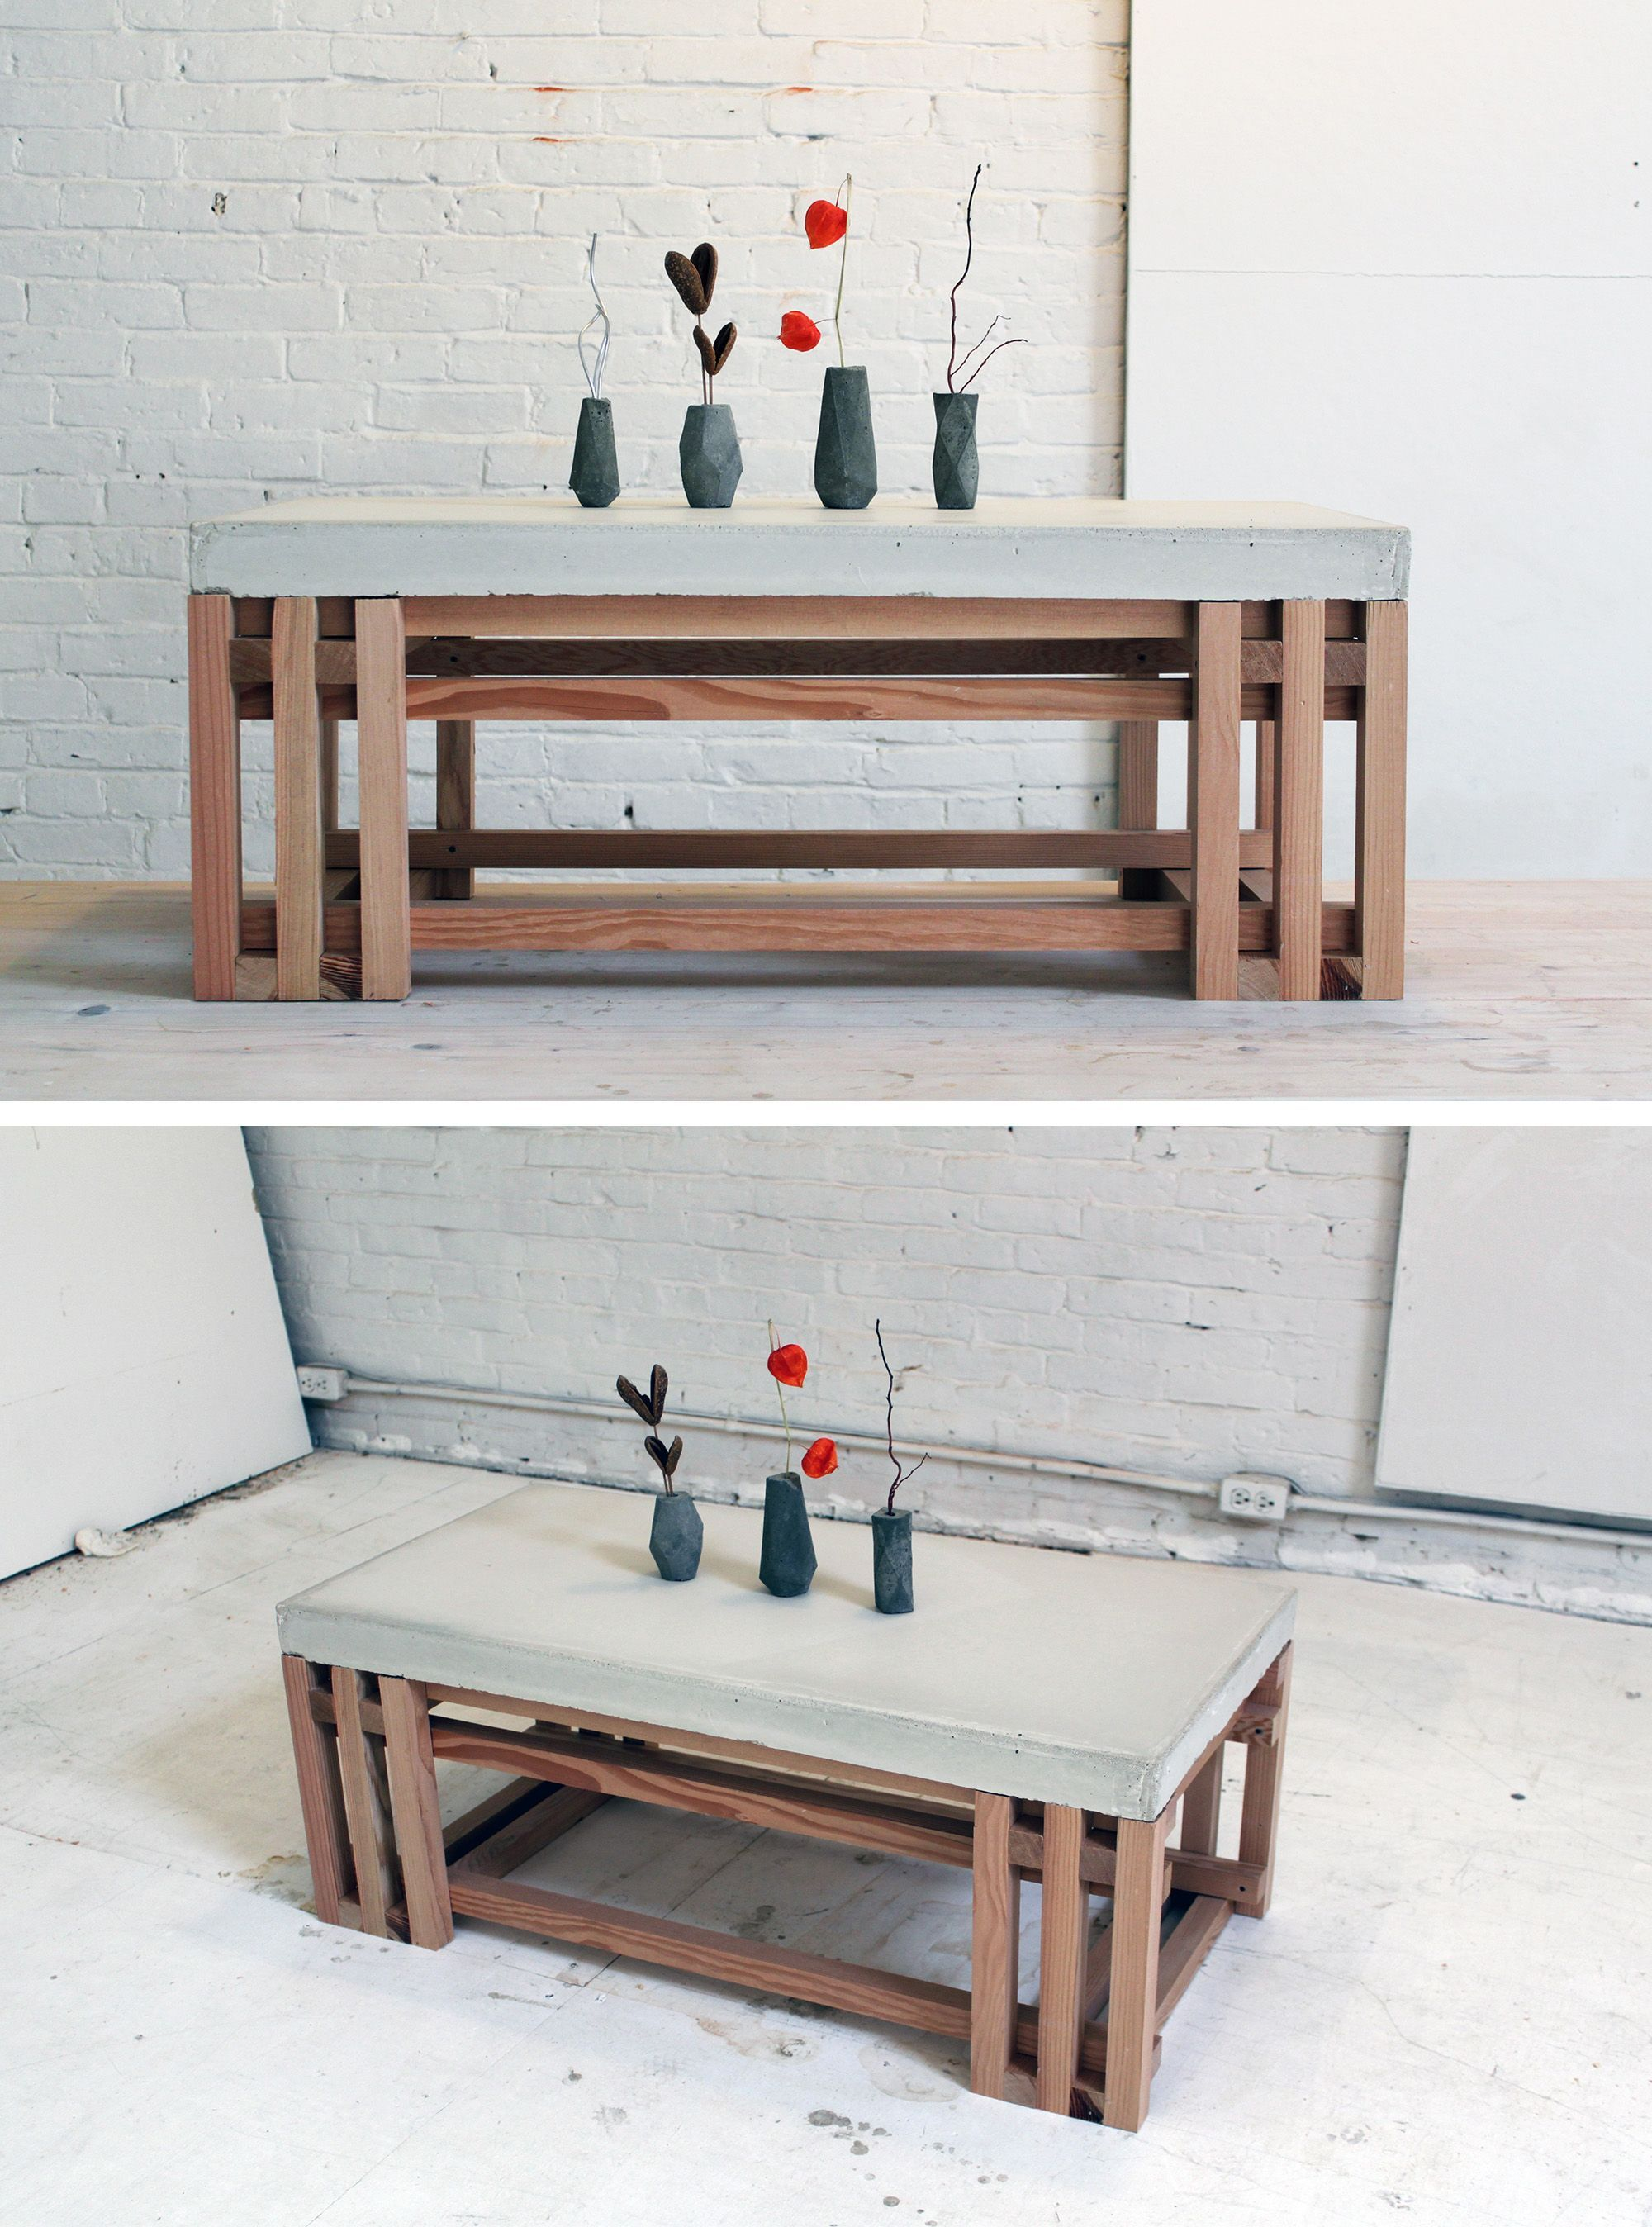 Build Your Own Concrete Wood Coffee Table For Step By Step Instructions Check Out Our Website Coffee Table Diy Des Mobiliario Disenos De Unas Concreto [ 2696 x 2000 Pixel ]